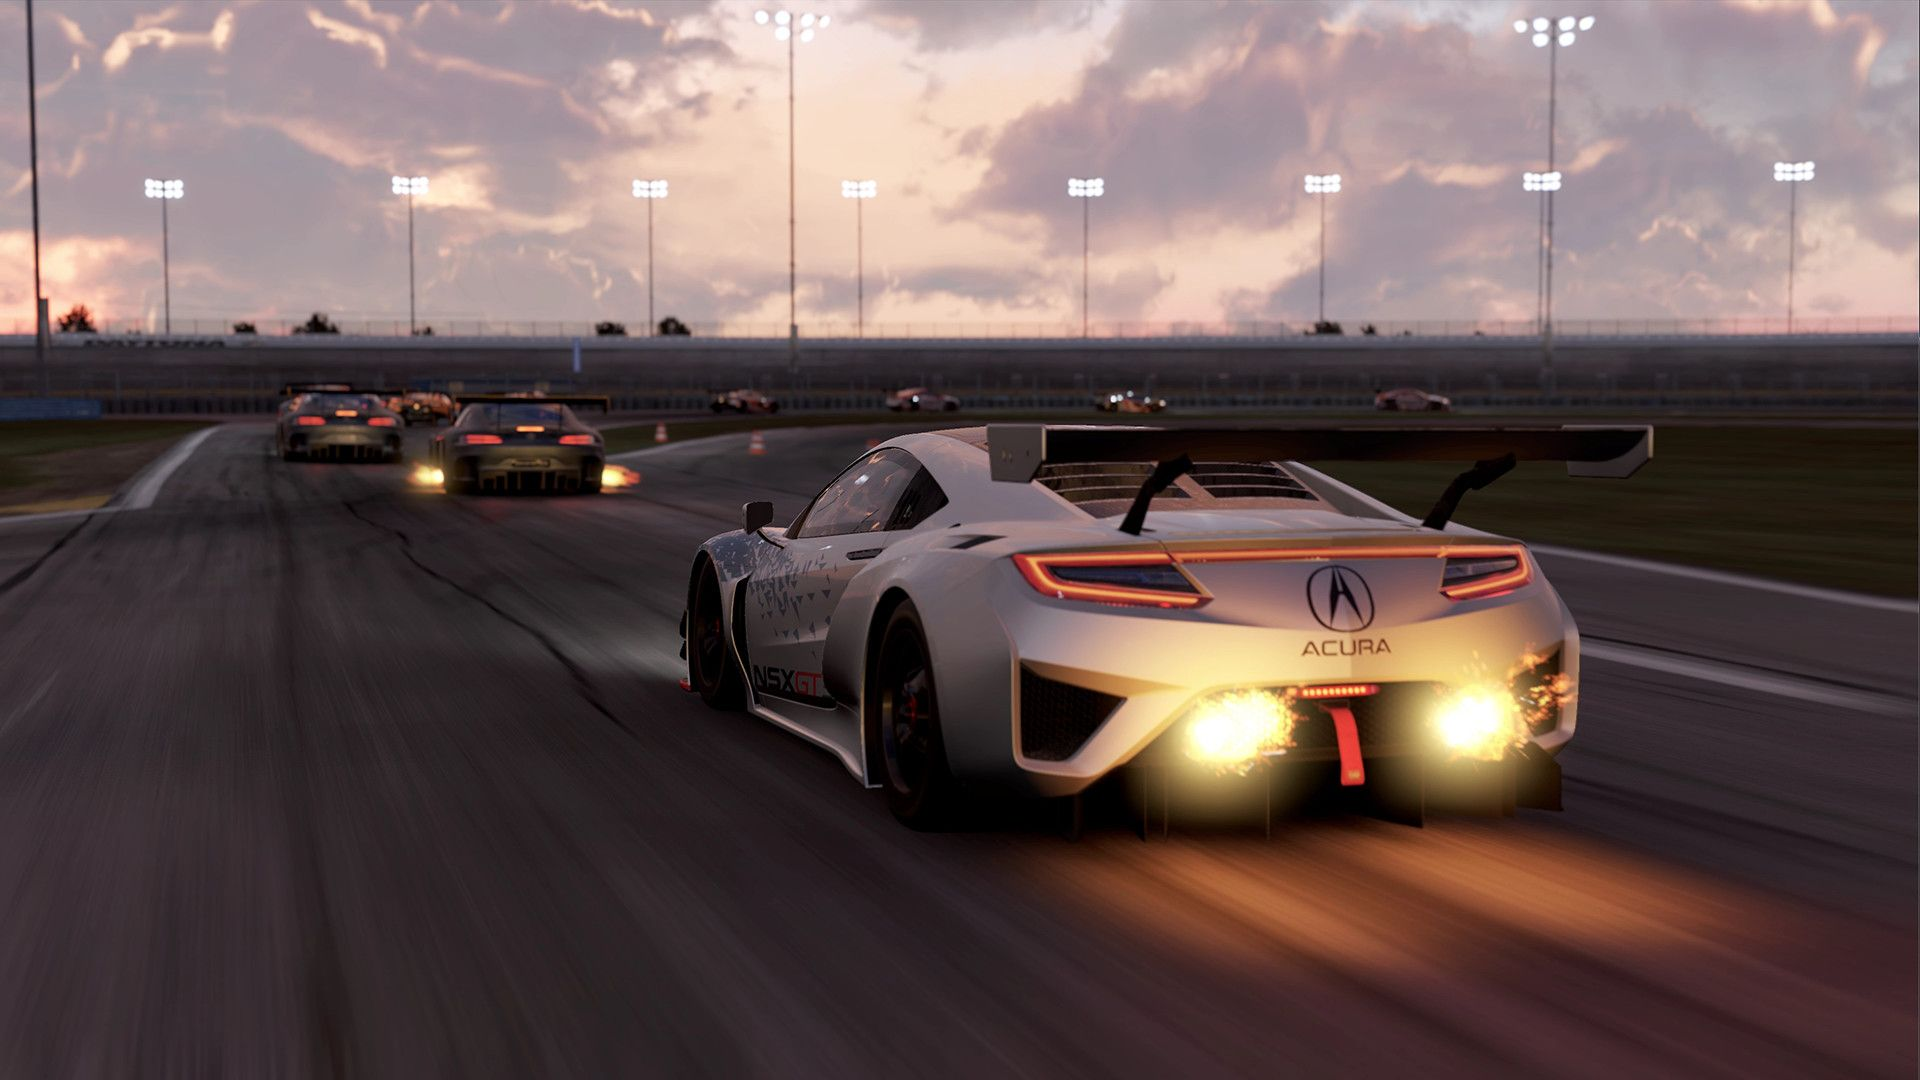 project cars 2 will run upscaled res on xbox one x tweaktown news rh pinterest com